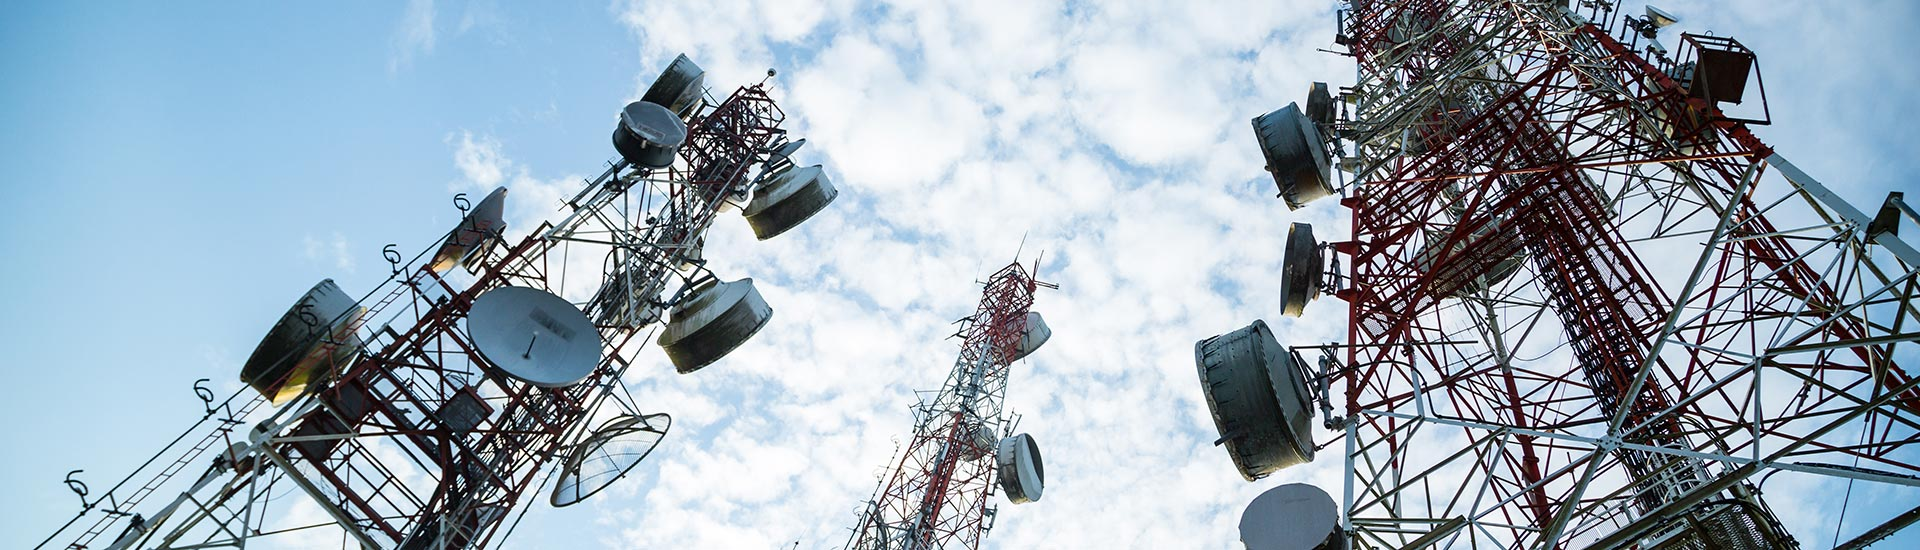 Rope access specialist telecom